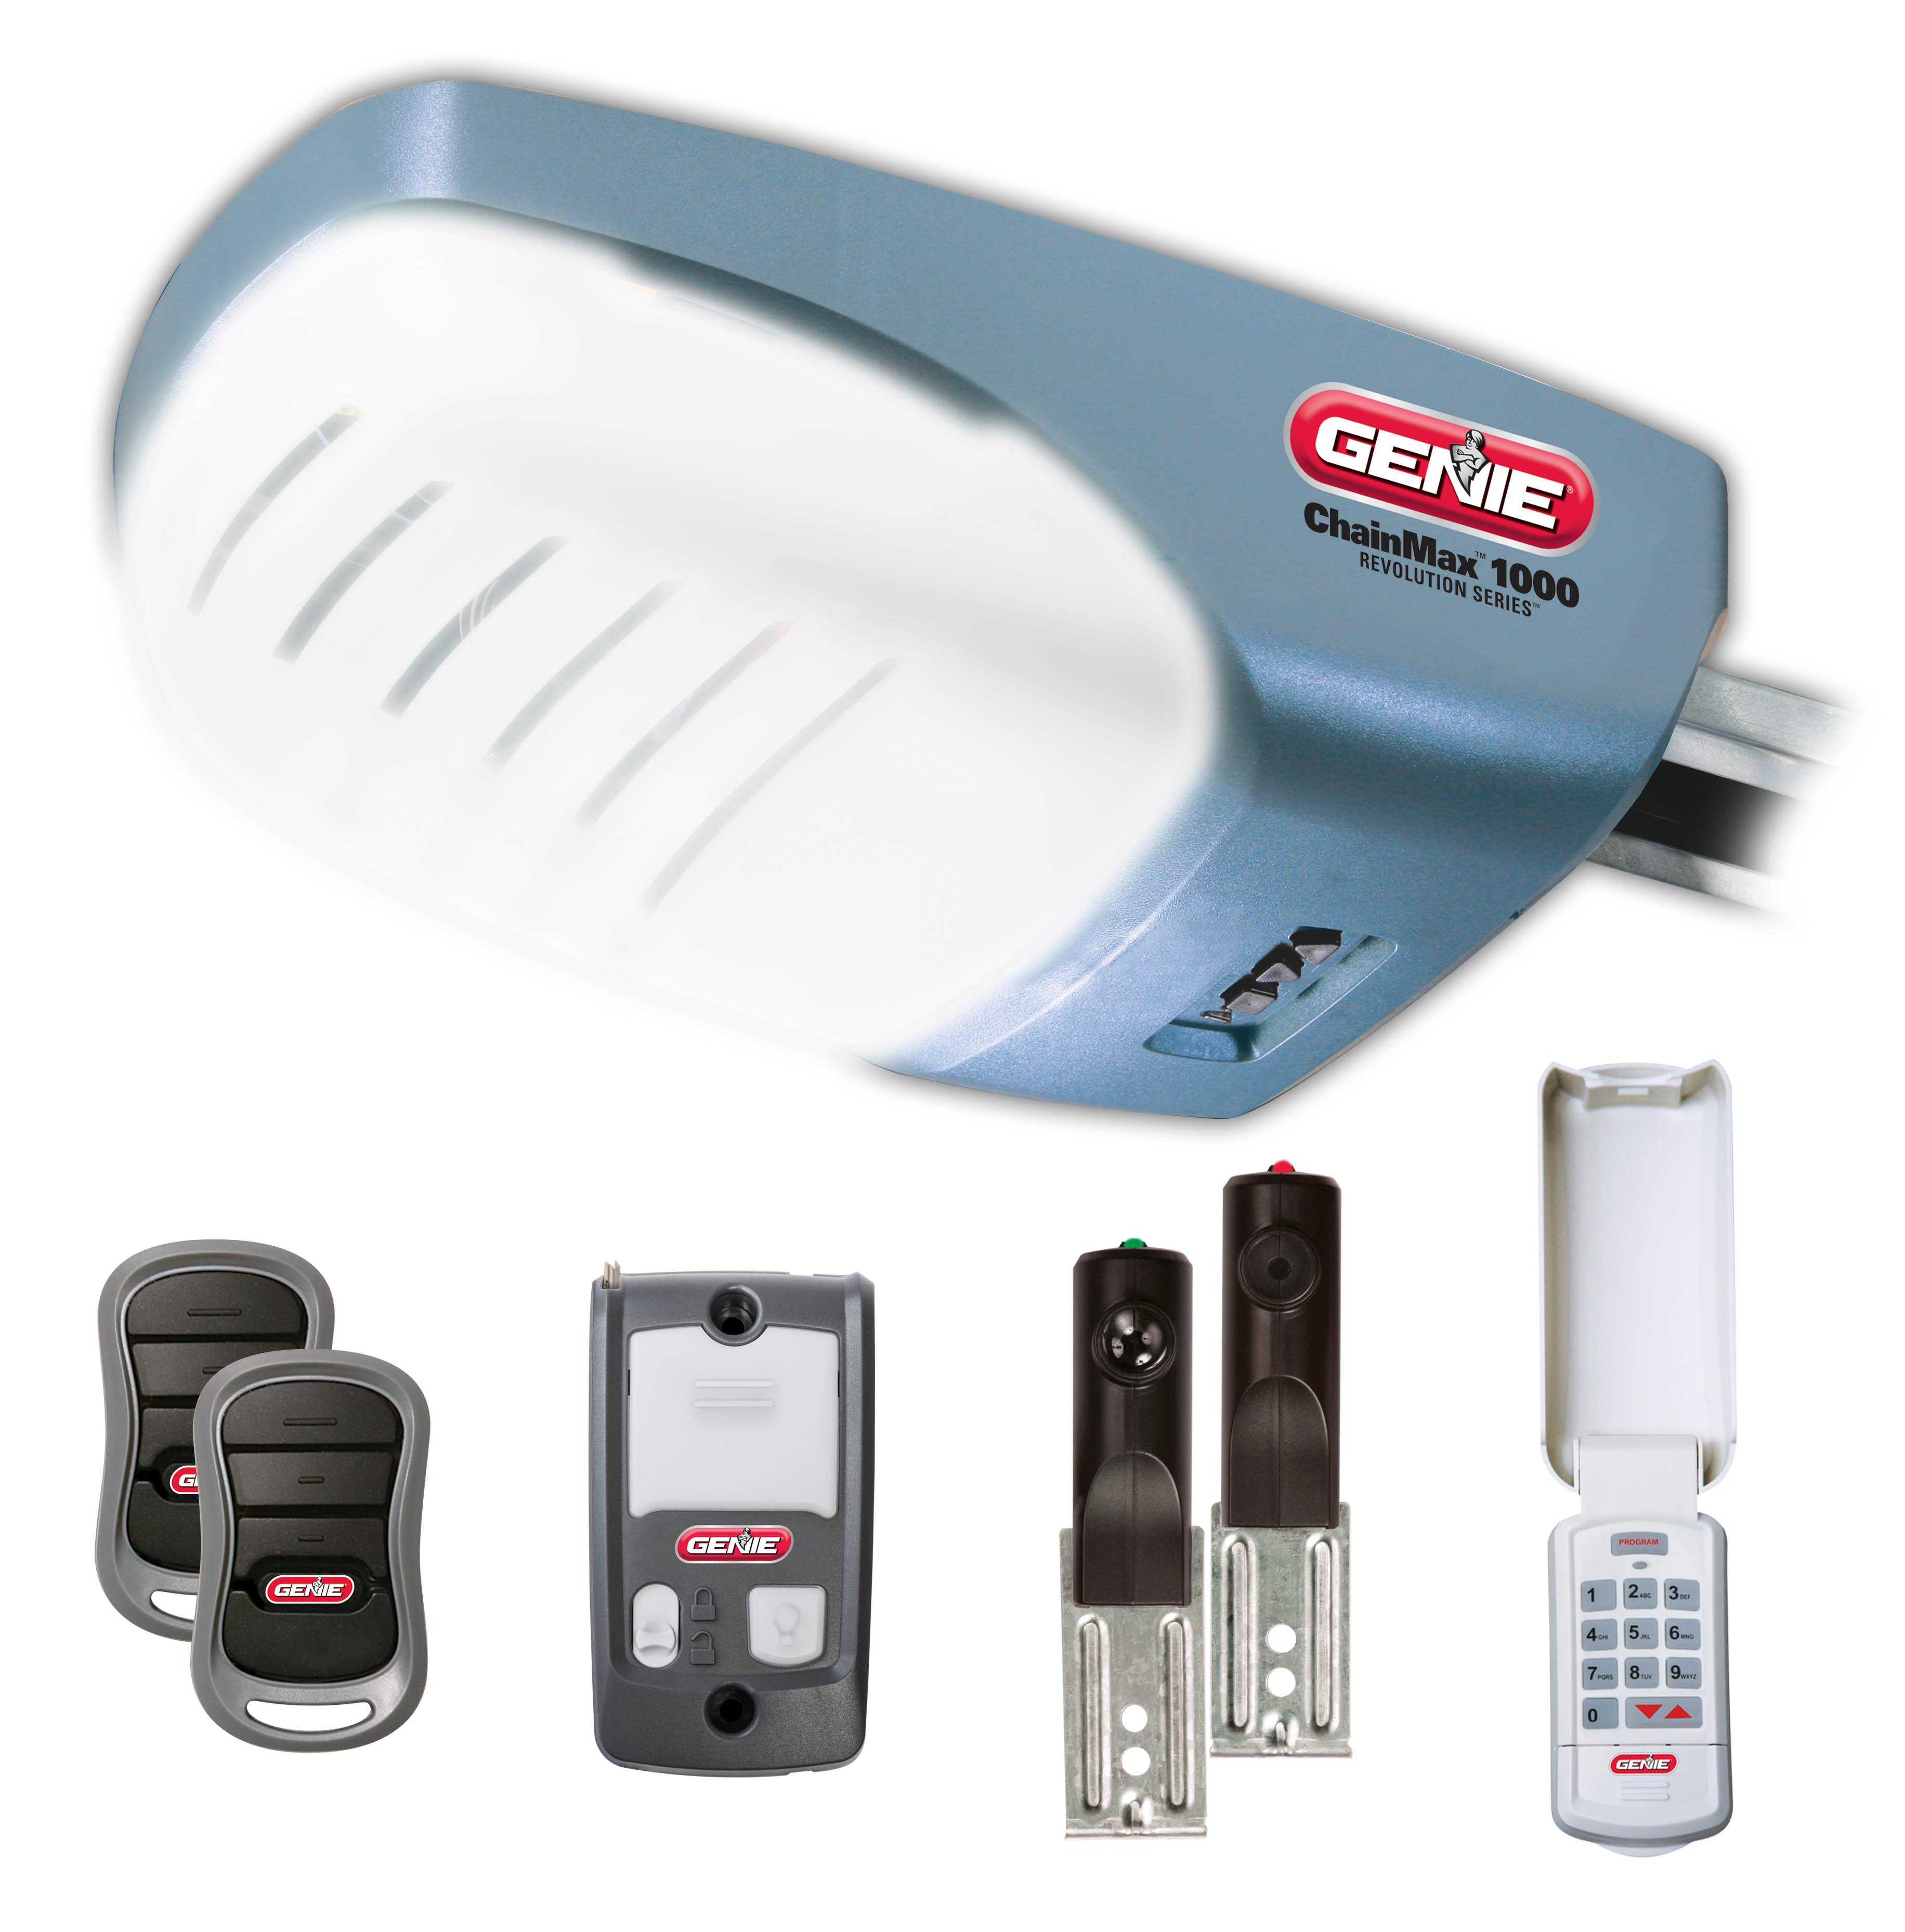 Genie 3022 Tkh Chainmax 1000 With Intellicode Access